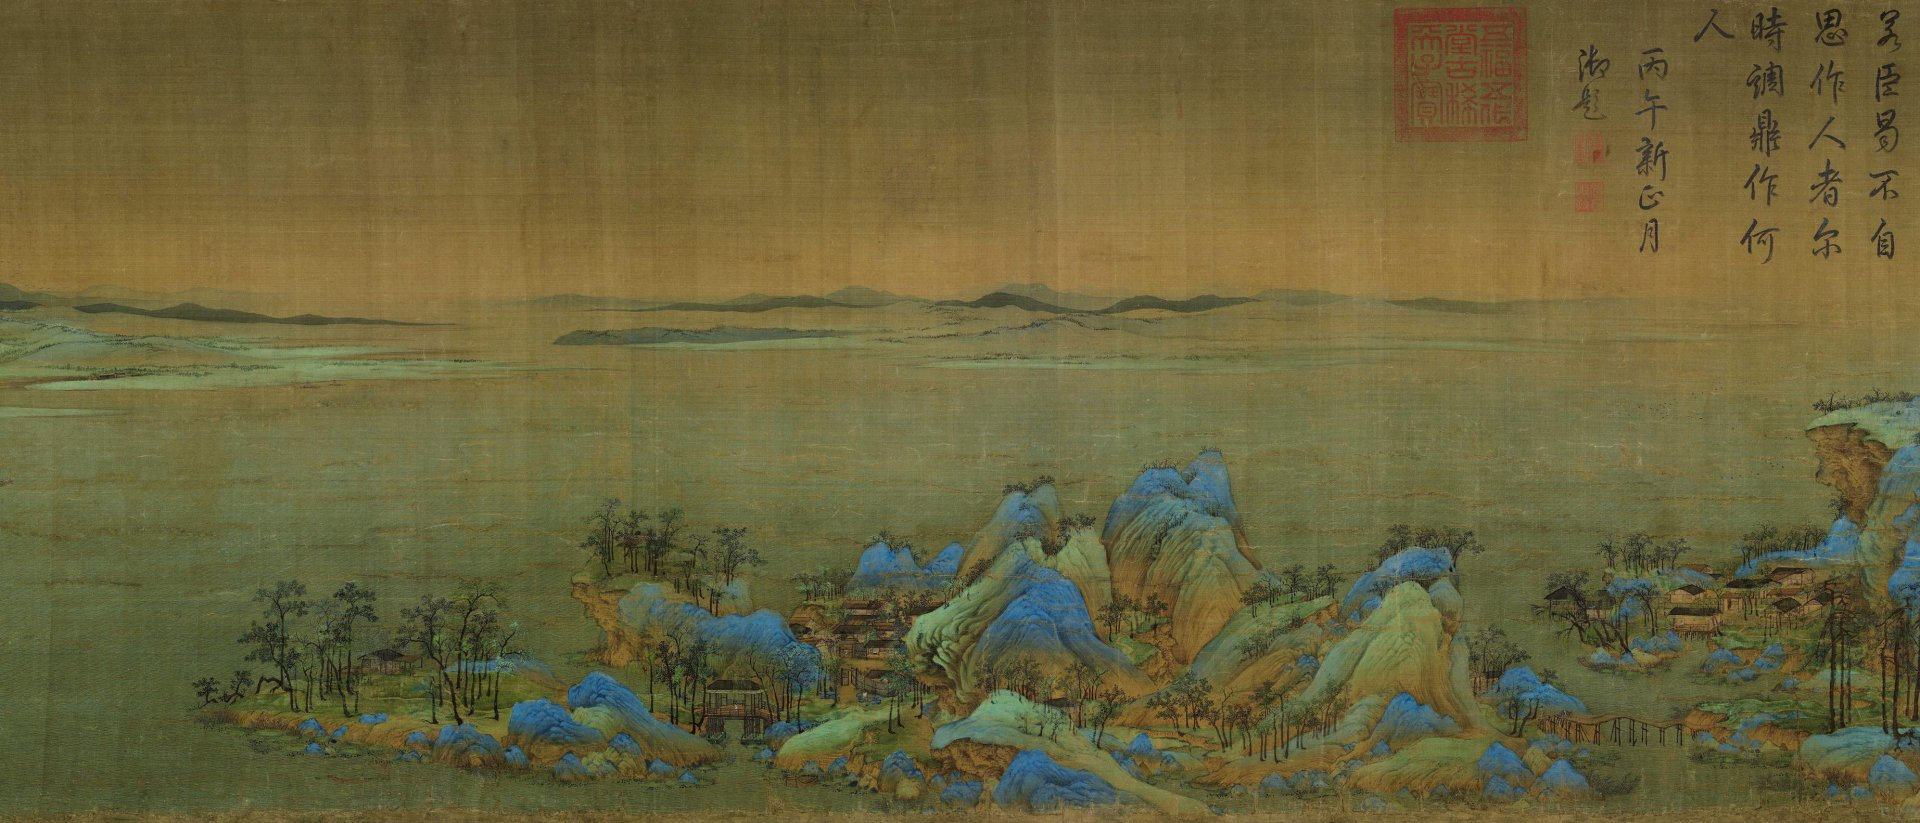 5.1e_Wang_Ximeng._A_Thousand_Li_of_Rivers_.jpg